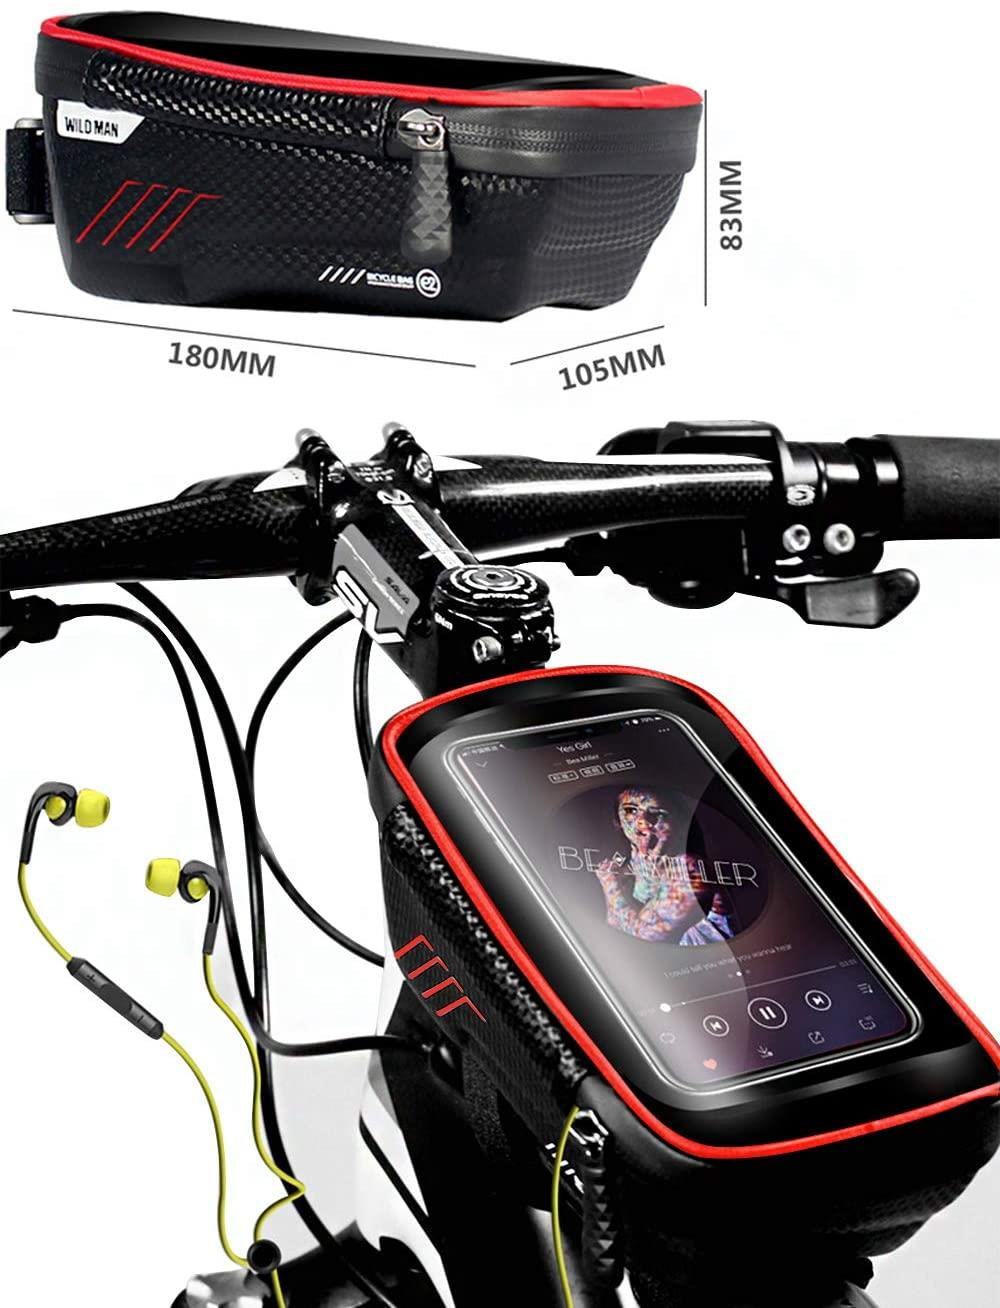 W.Proof Phone Bag Touch Screen up to 6.5 inches, Storage for Electric Scooter and Bicycle Accessory